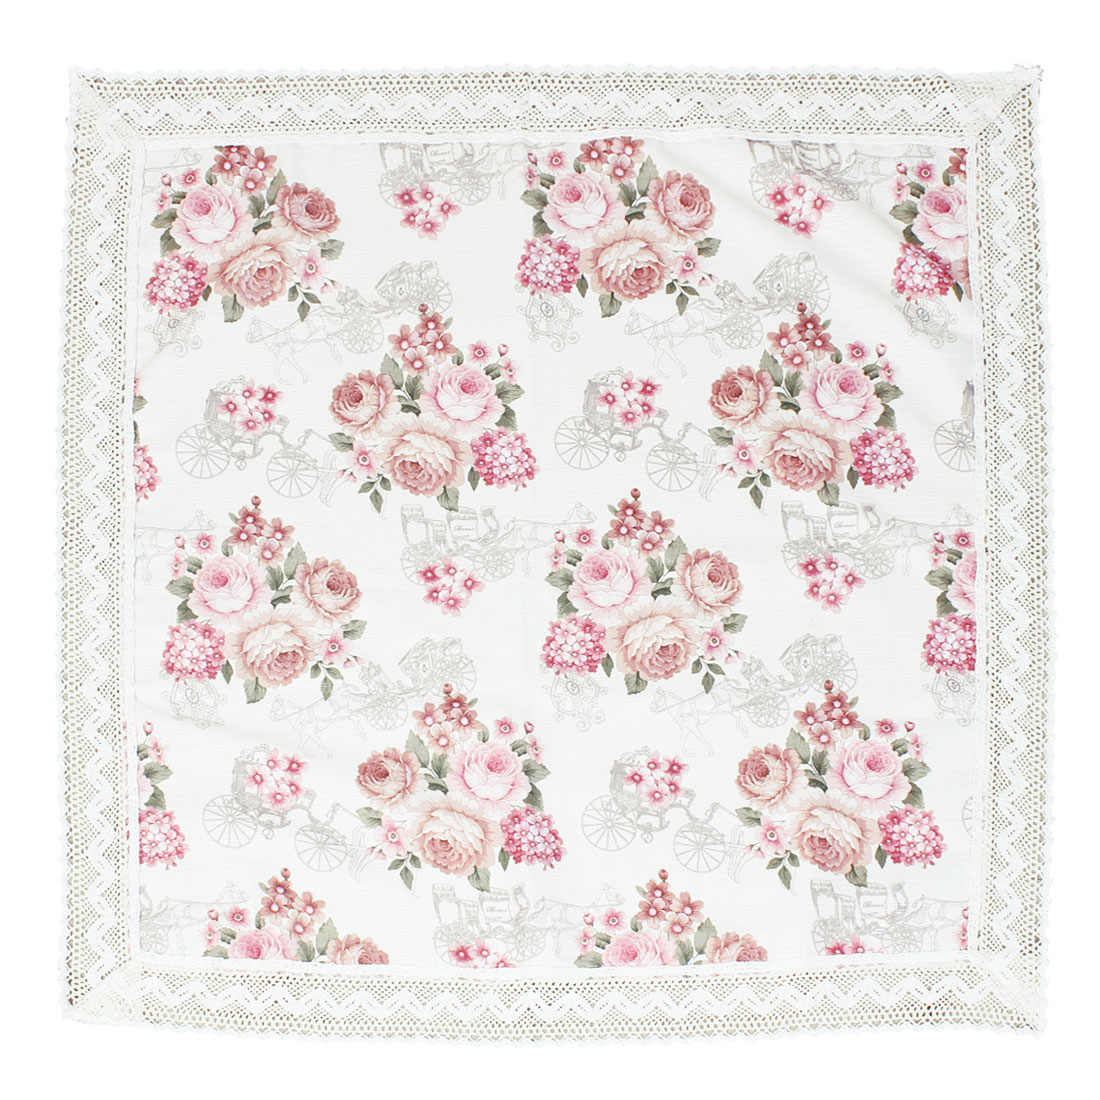 "Cotton Polyester Garden House Light Pink Flower Pattern Decoration Cover Tablecloth Water Oil Stain Resistant Square 35.4"" x 35.4"""